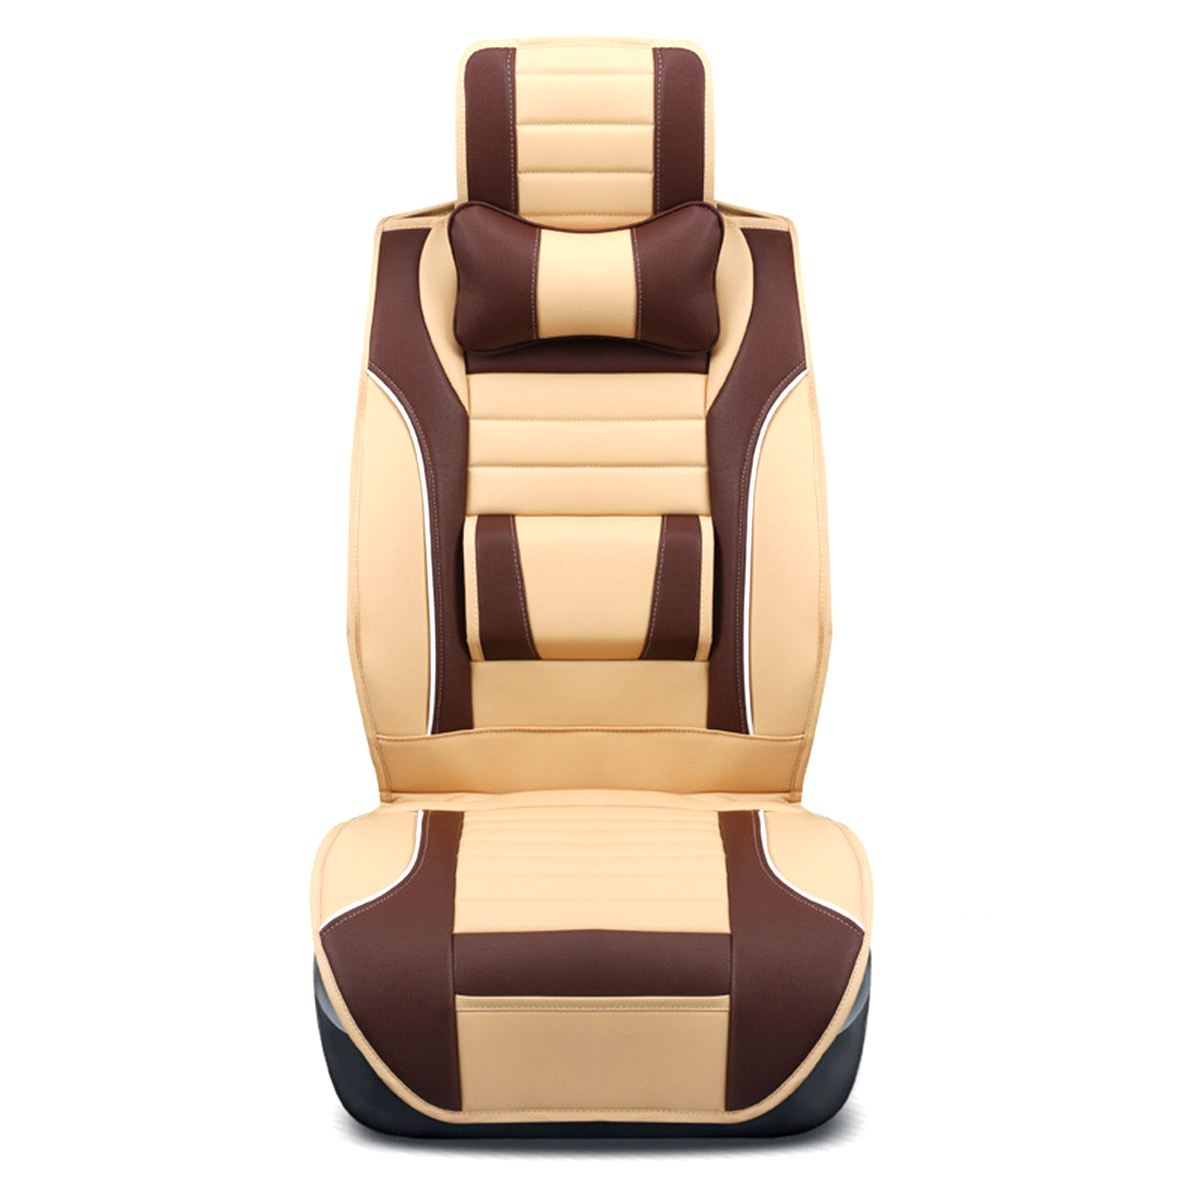 1pcs Luxury Full Surround Front Rear Pu Leather Car Seat